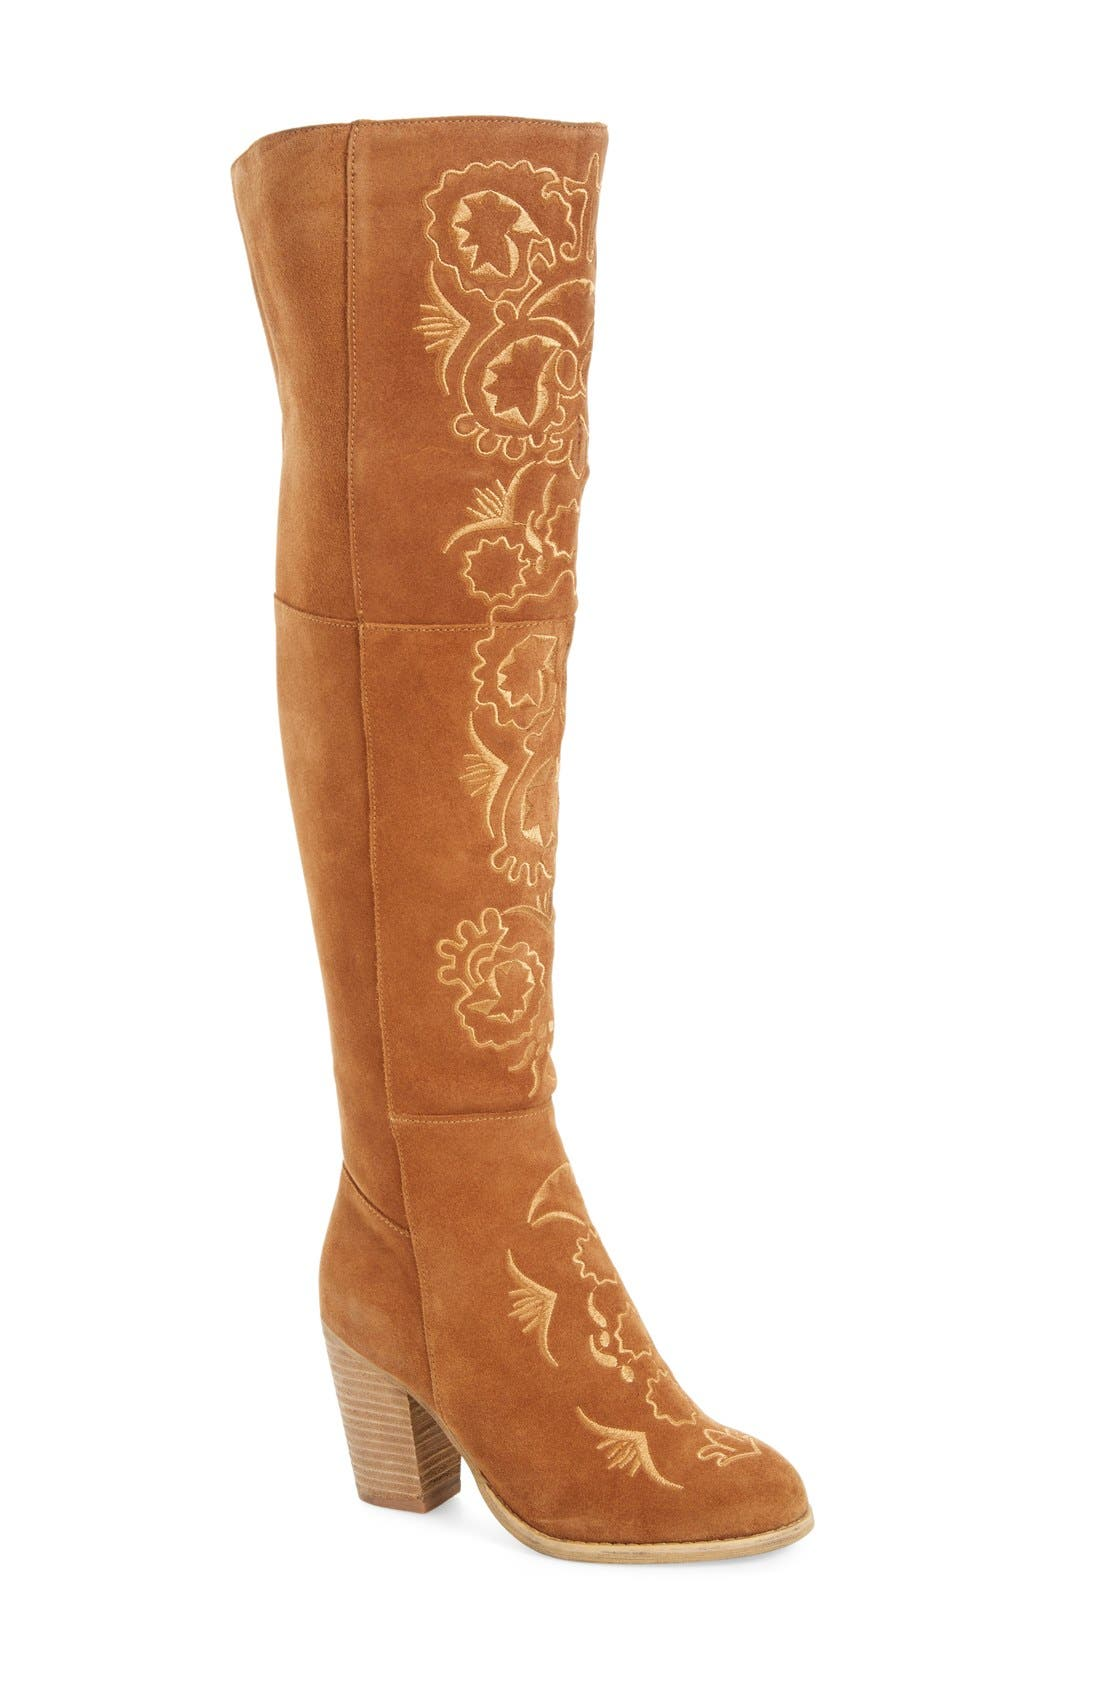 Main Image - Sbicca Acapella Embroidered Over the Knee Boot (Women)